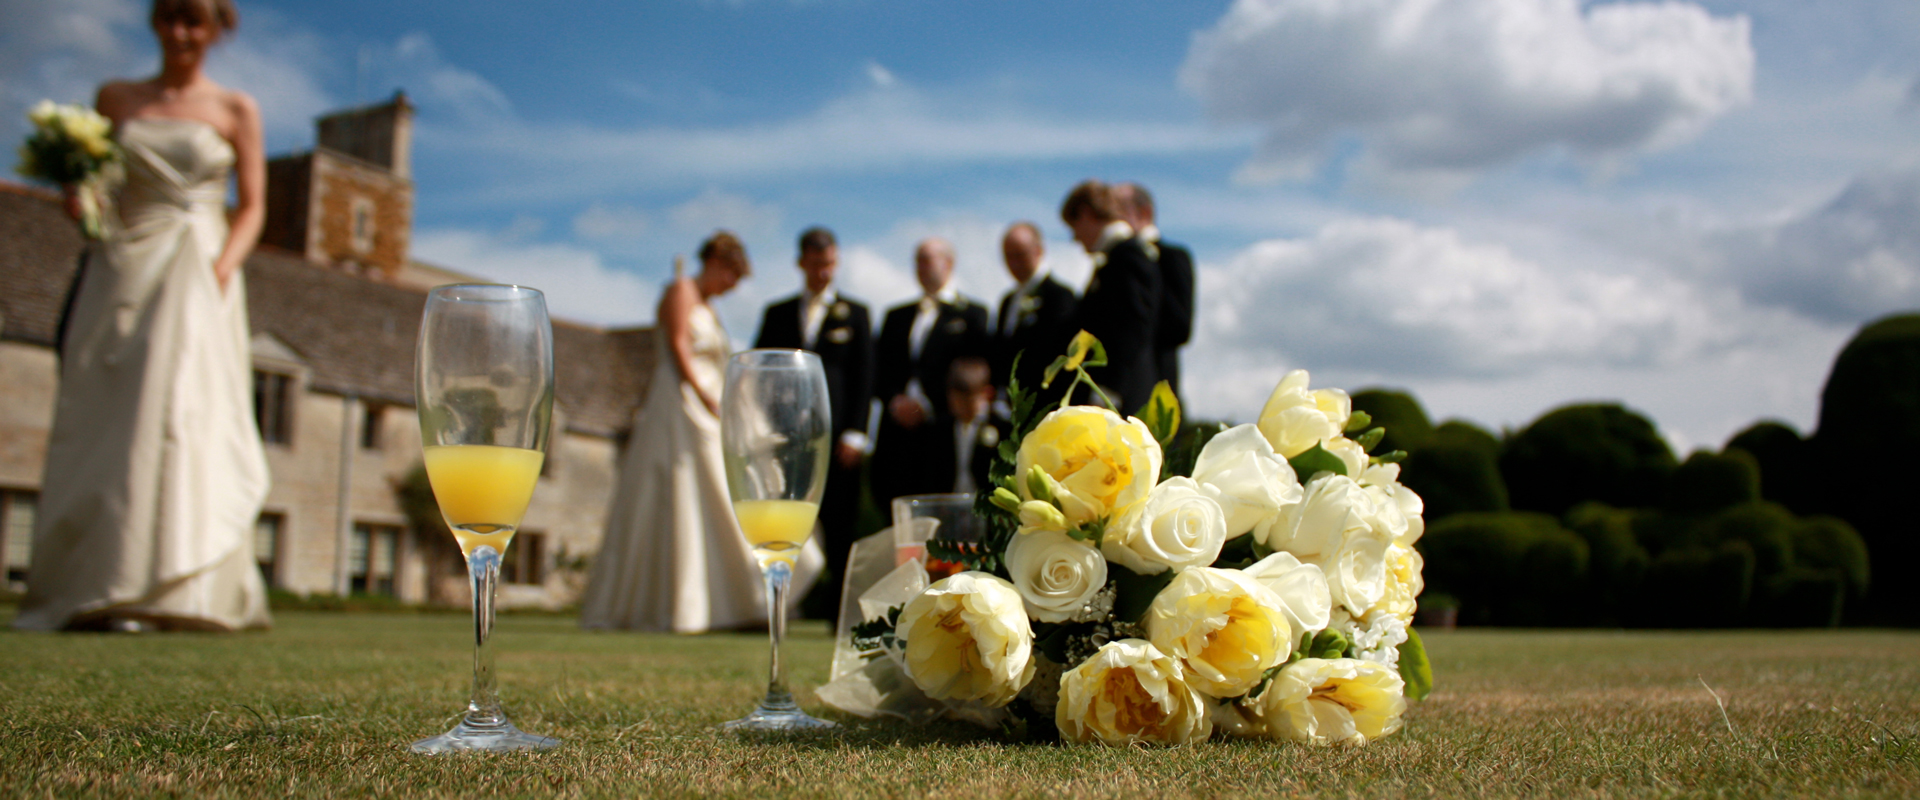 Wedding group photo focused on a bouquet and flute glass. Photography by ADP London